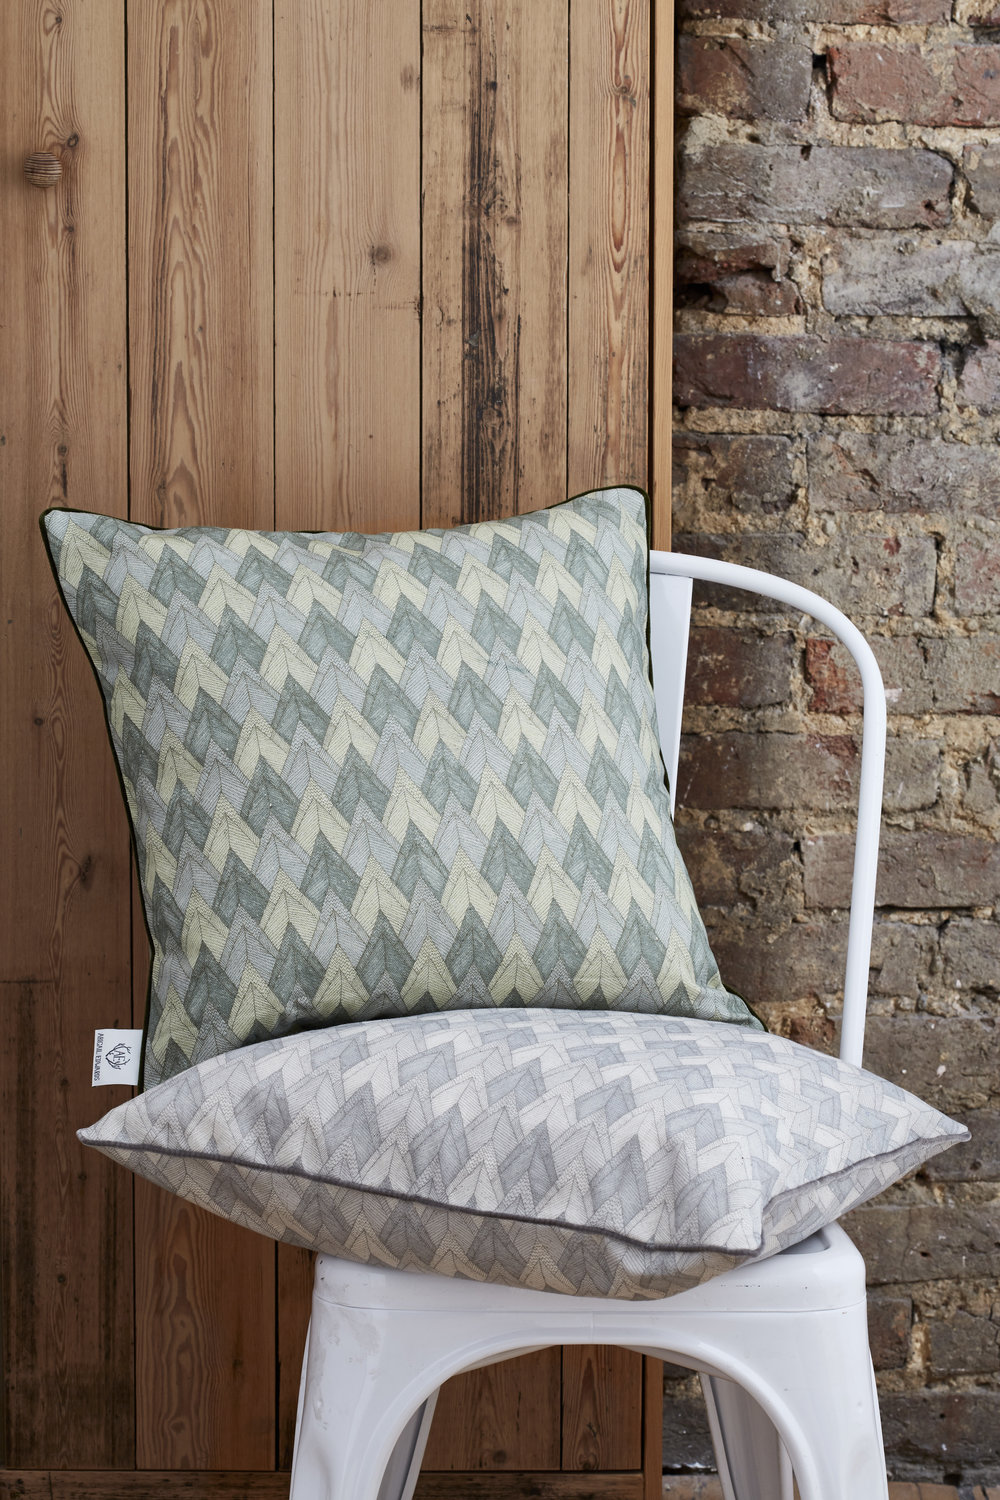 Abigail Edwards NEW Mountainous Cushion in Forest & Mountain, £95.jpg